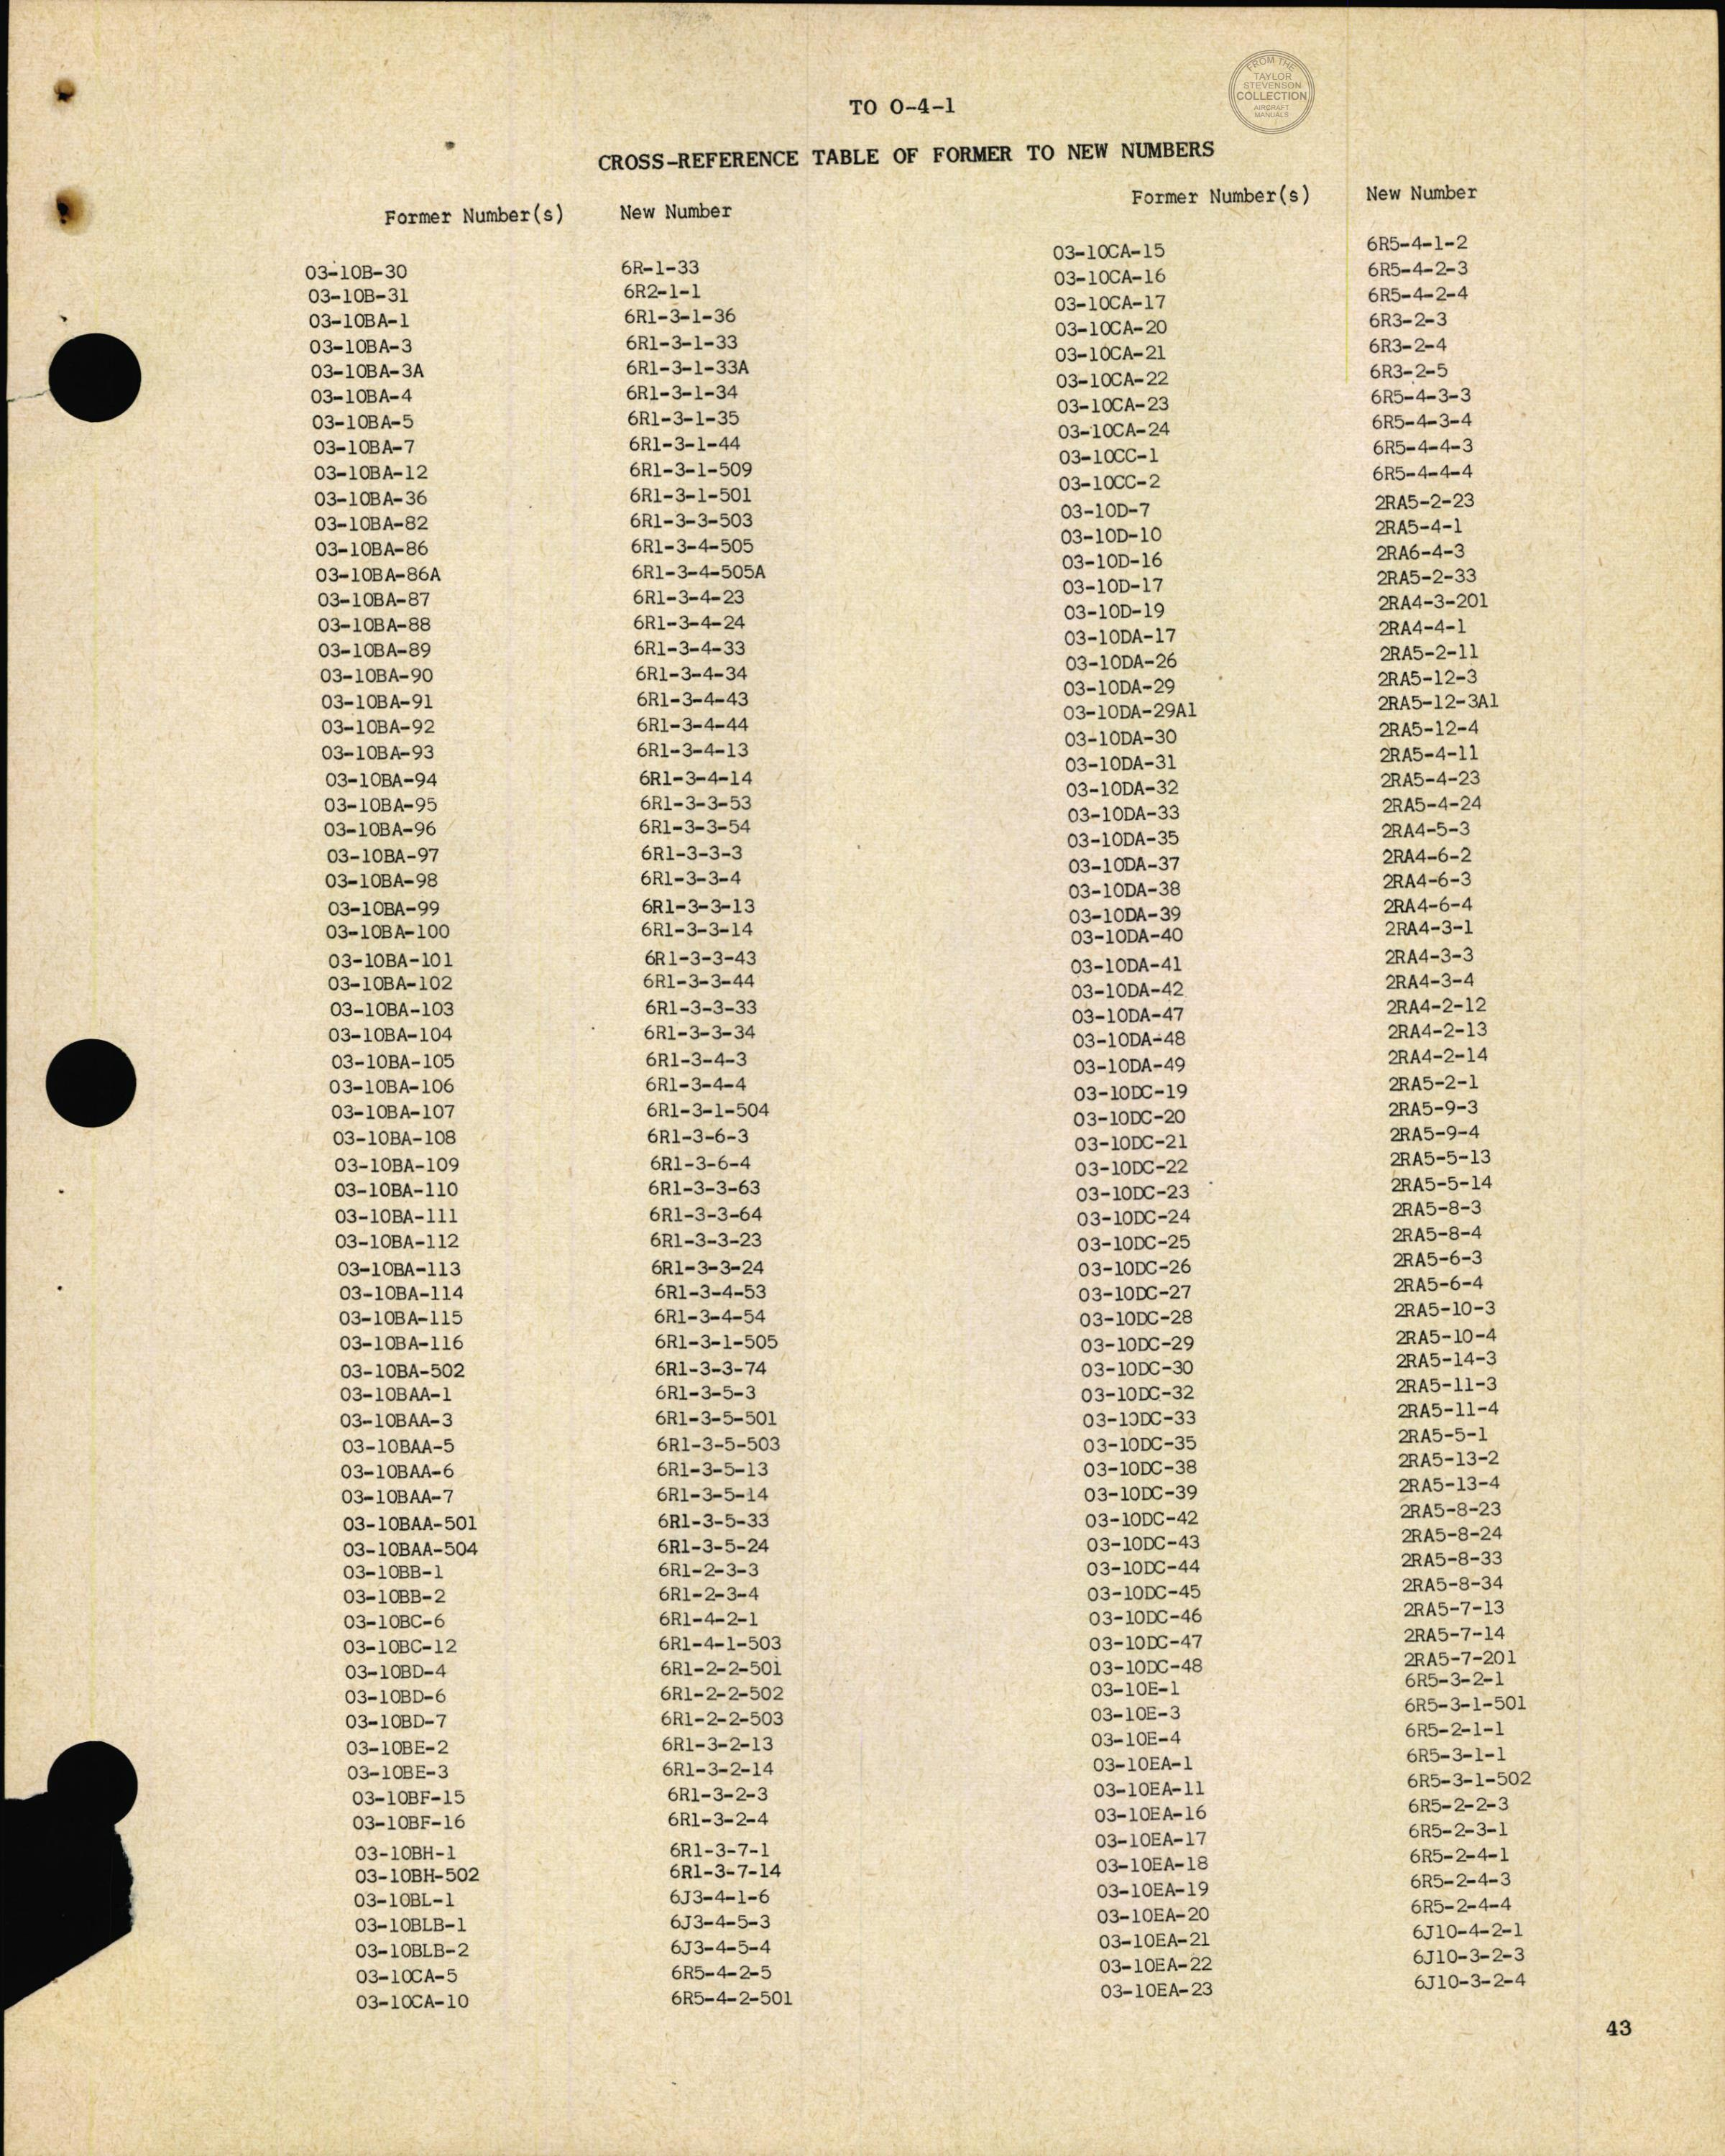 Sample page 45 from AirCorps Library document: Cross Reference Table of Former to New Numbers